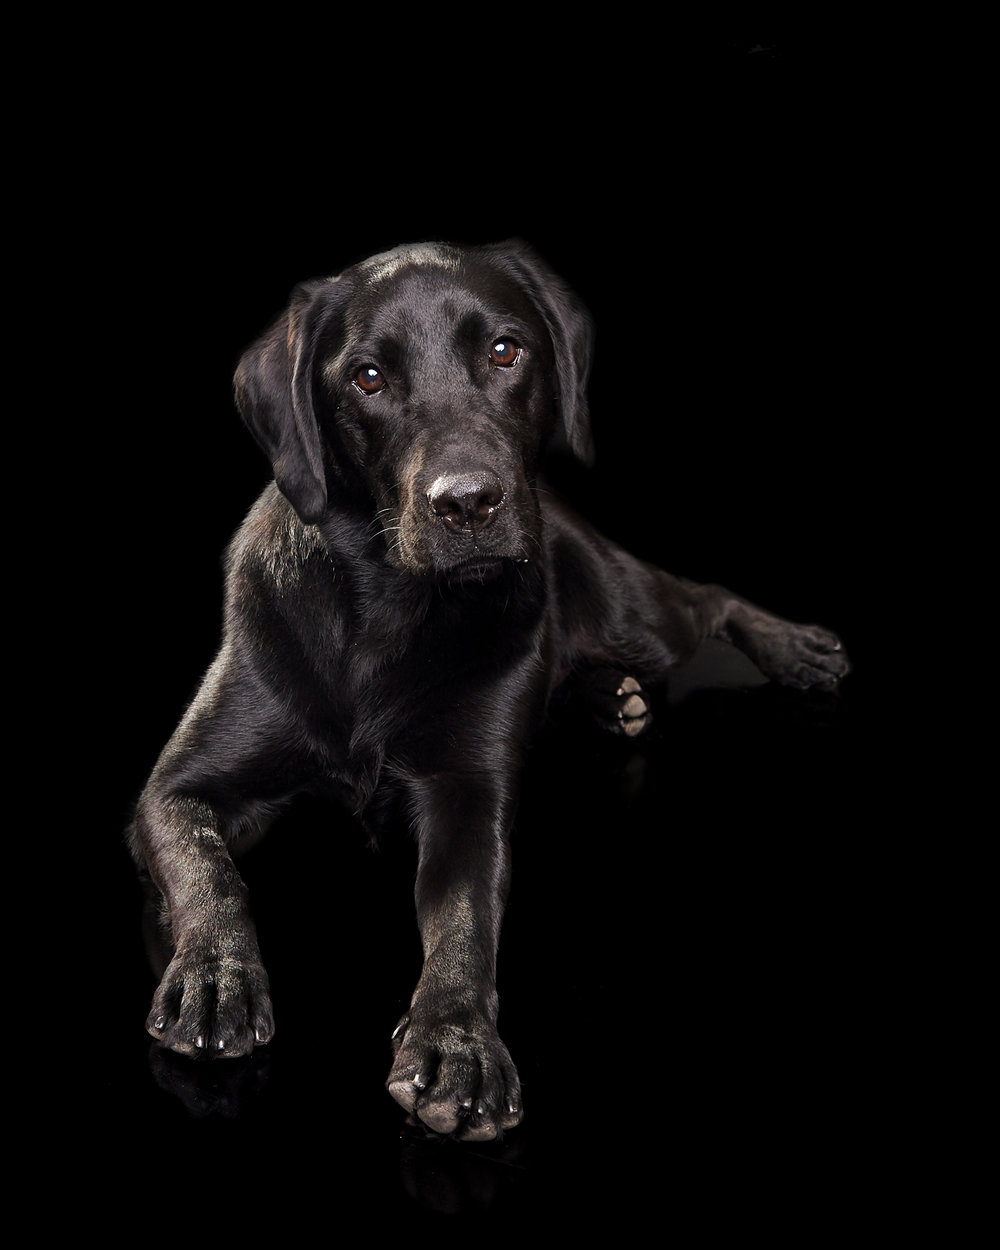 labrador_pet_dog_four_paws_portrait